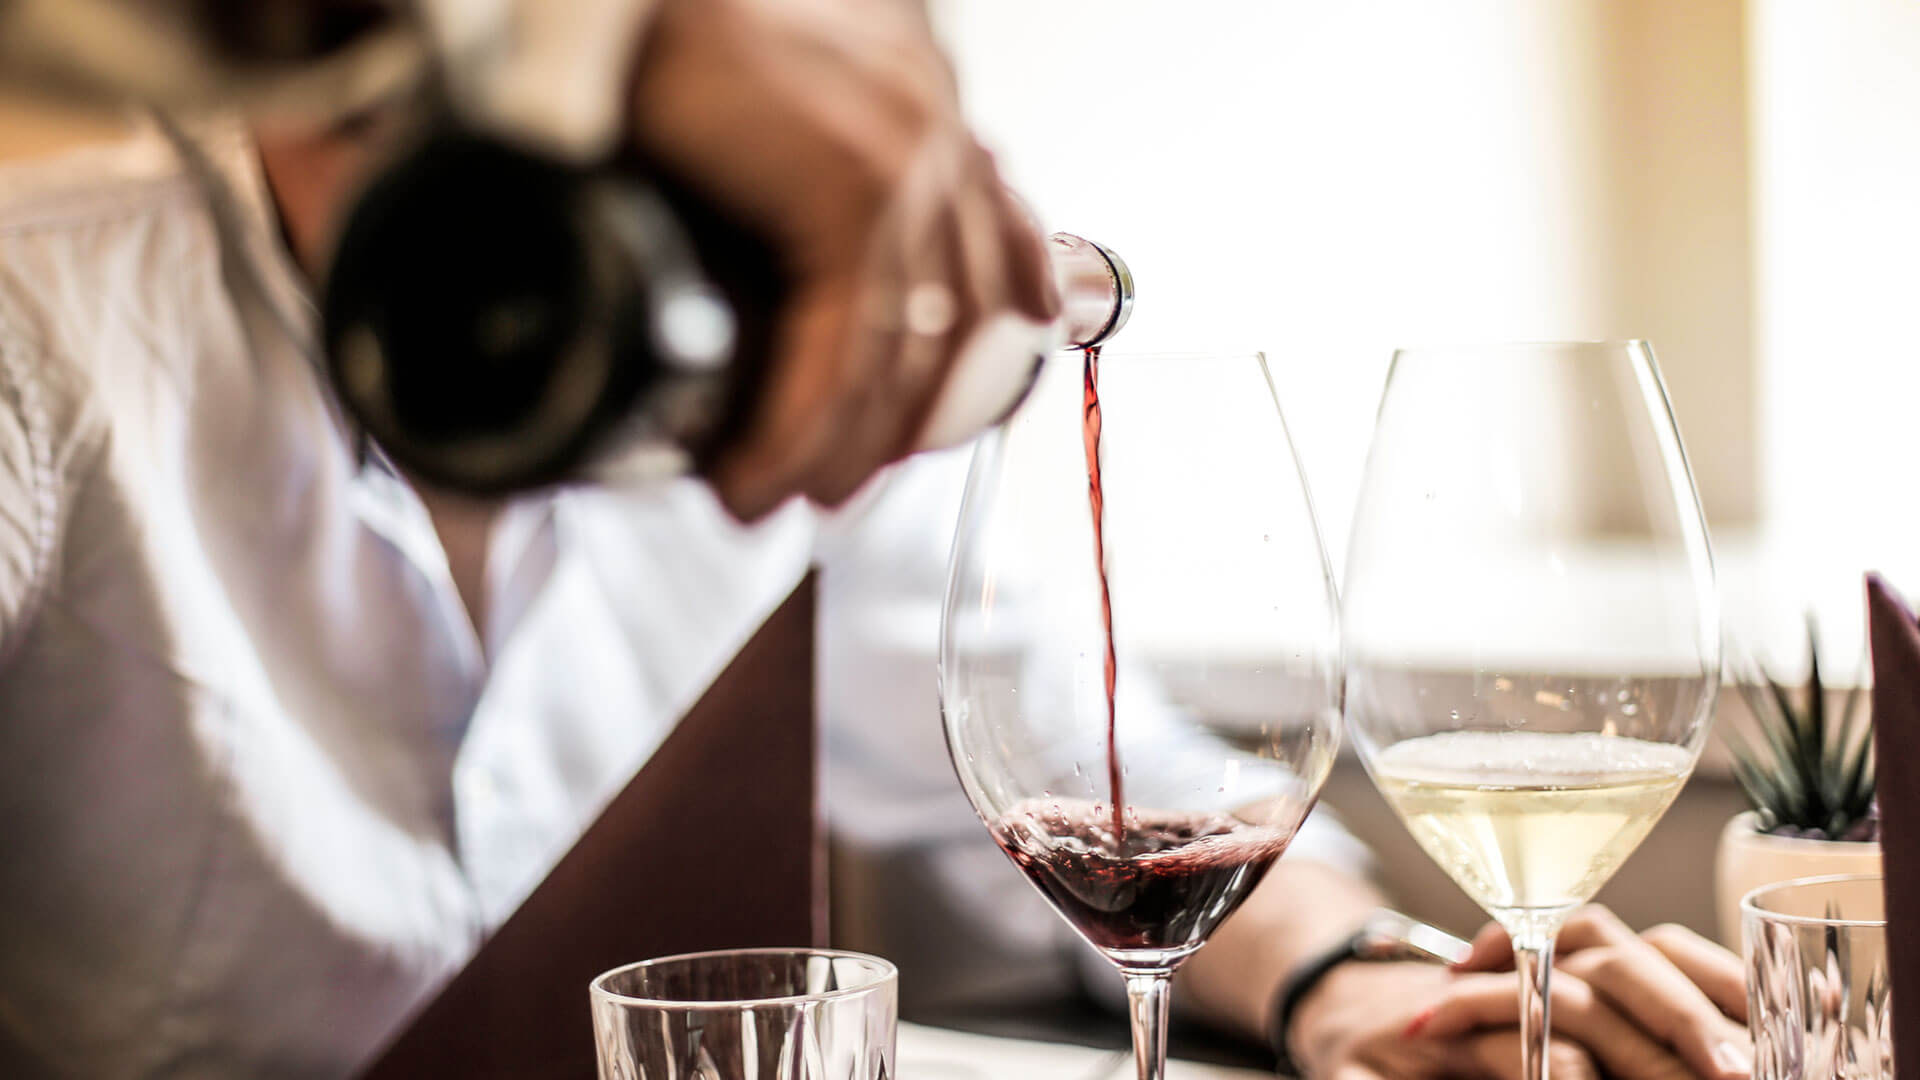 Red wine being poured into a glass at the table